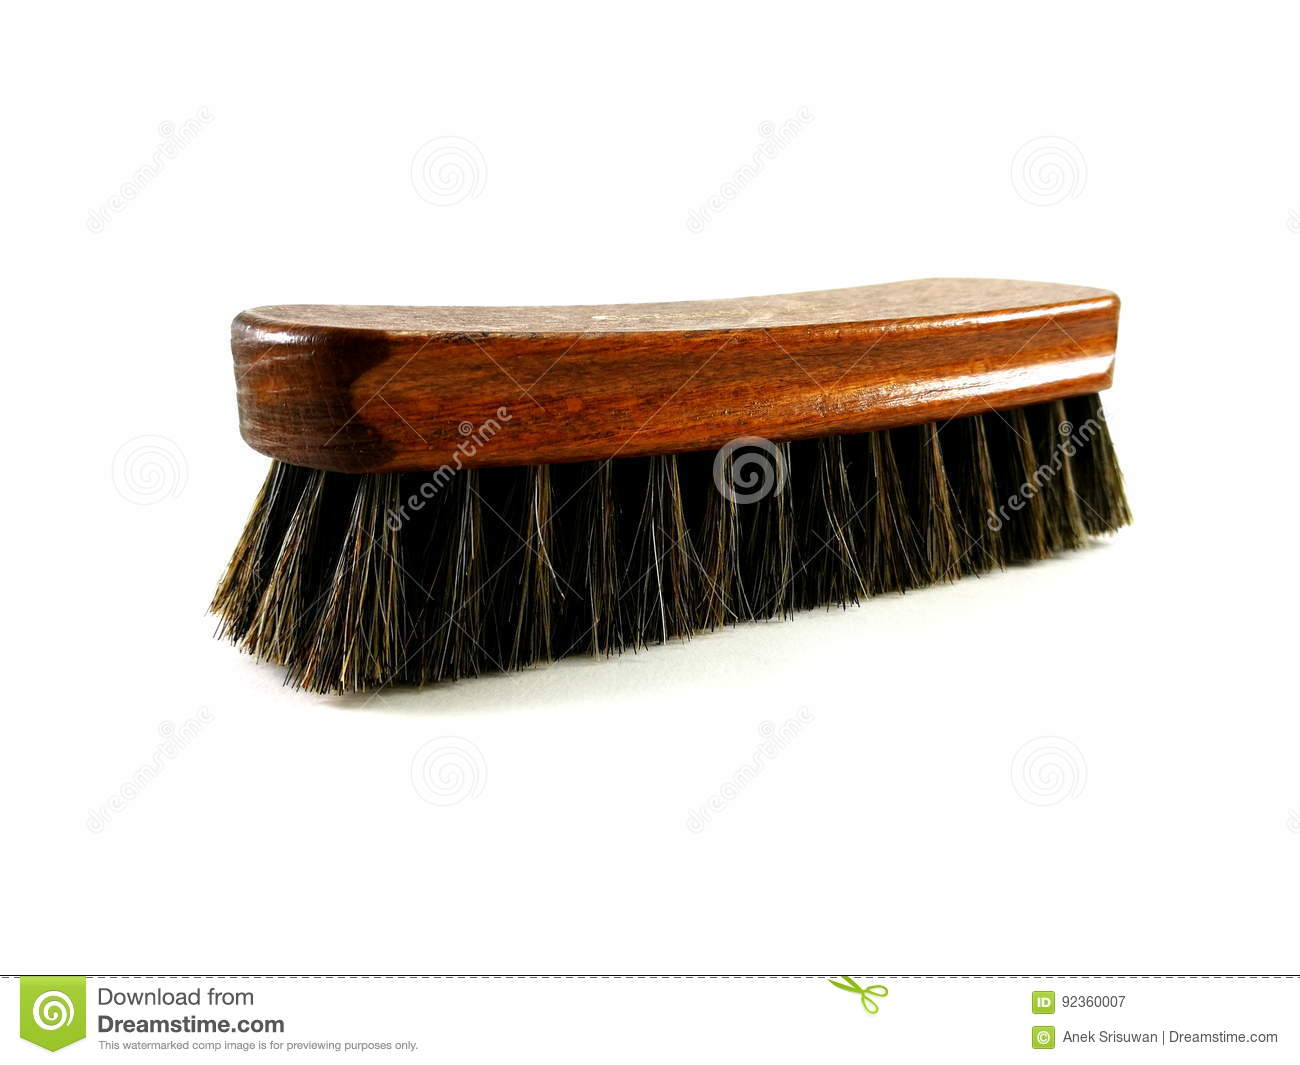 Brown horsehair brush for cleaning.